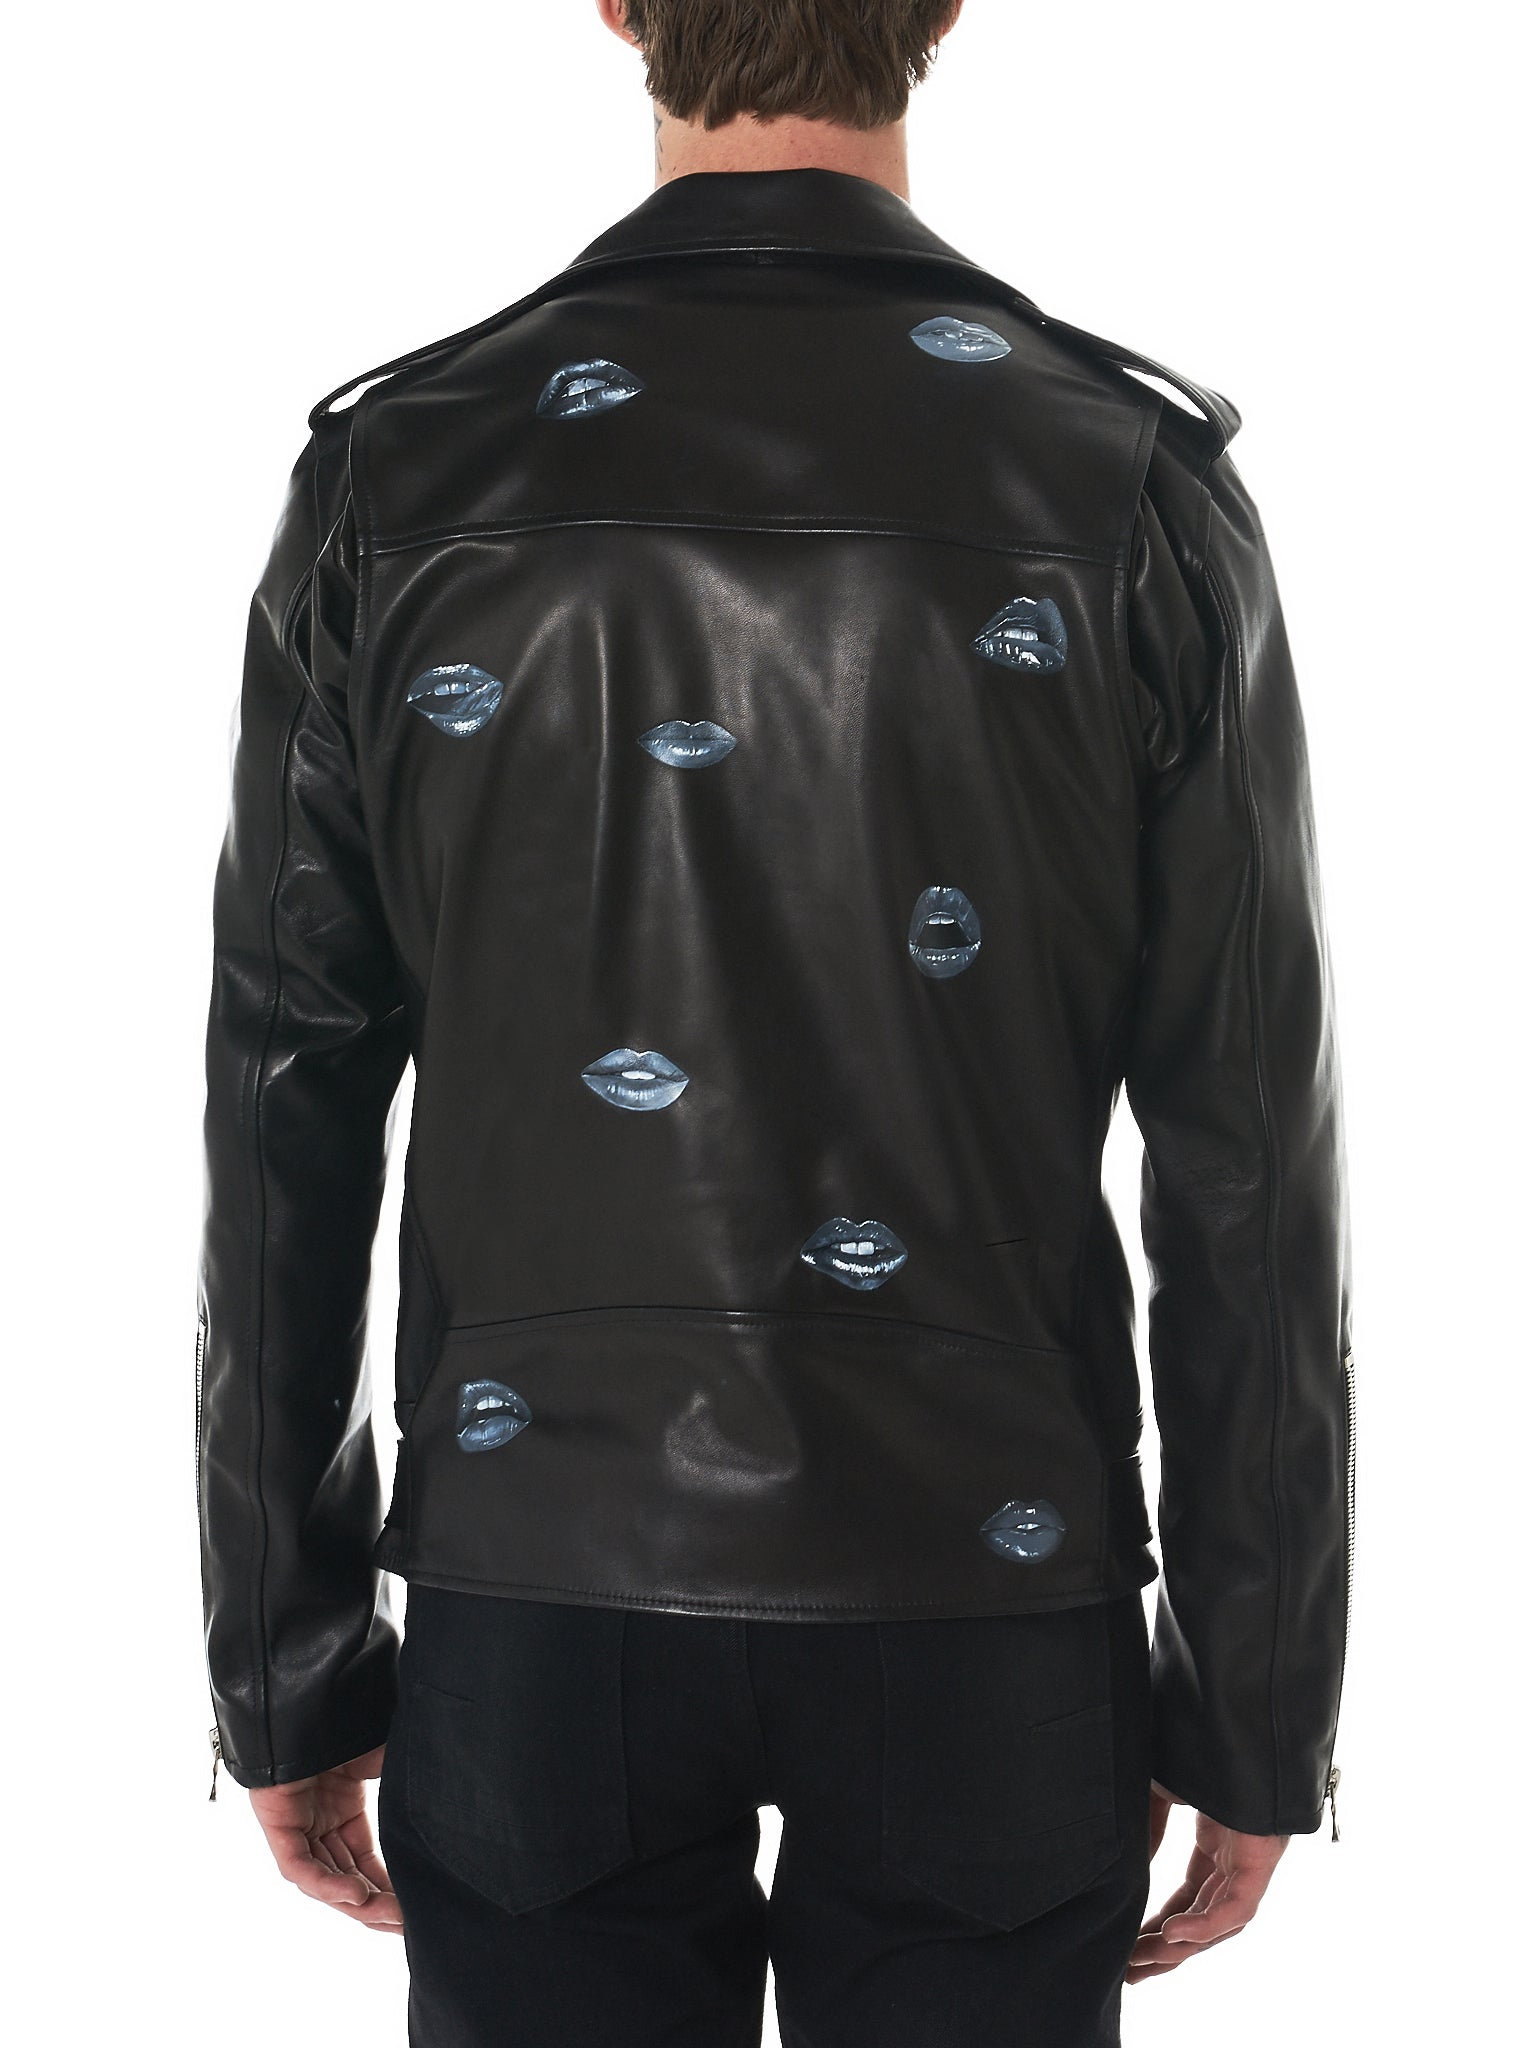 Nahmias Biker Jacket - Hlorenzo Back